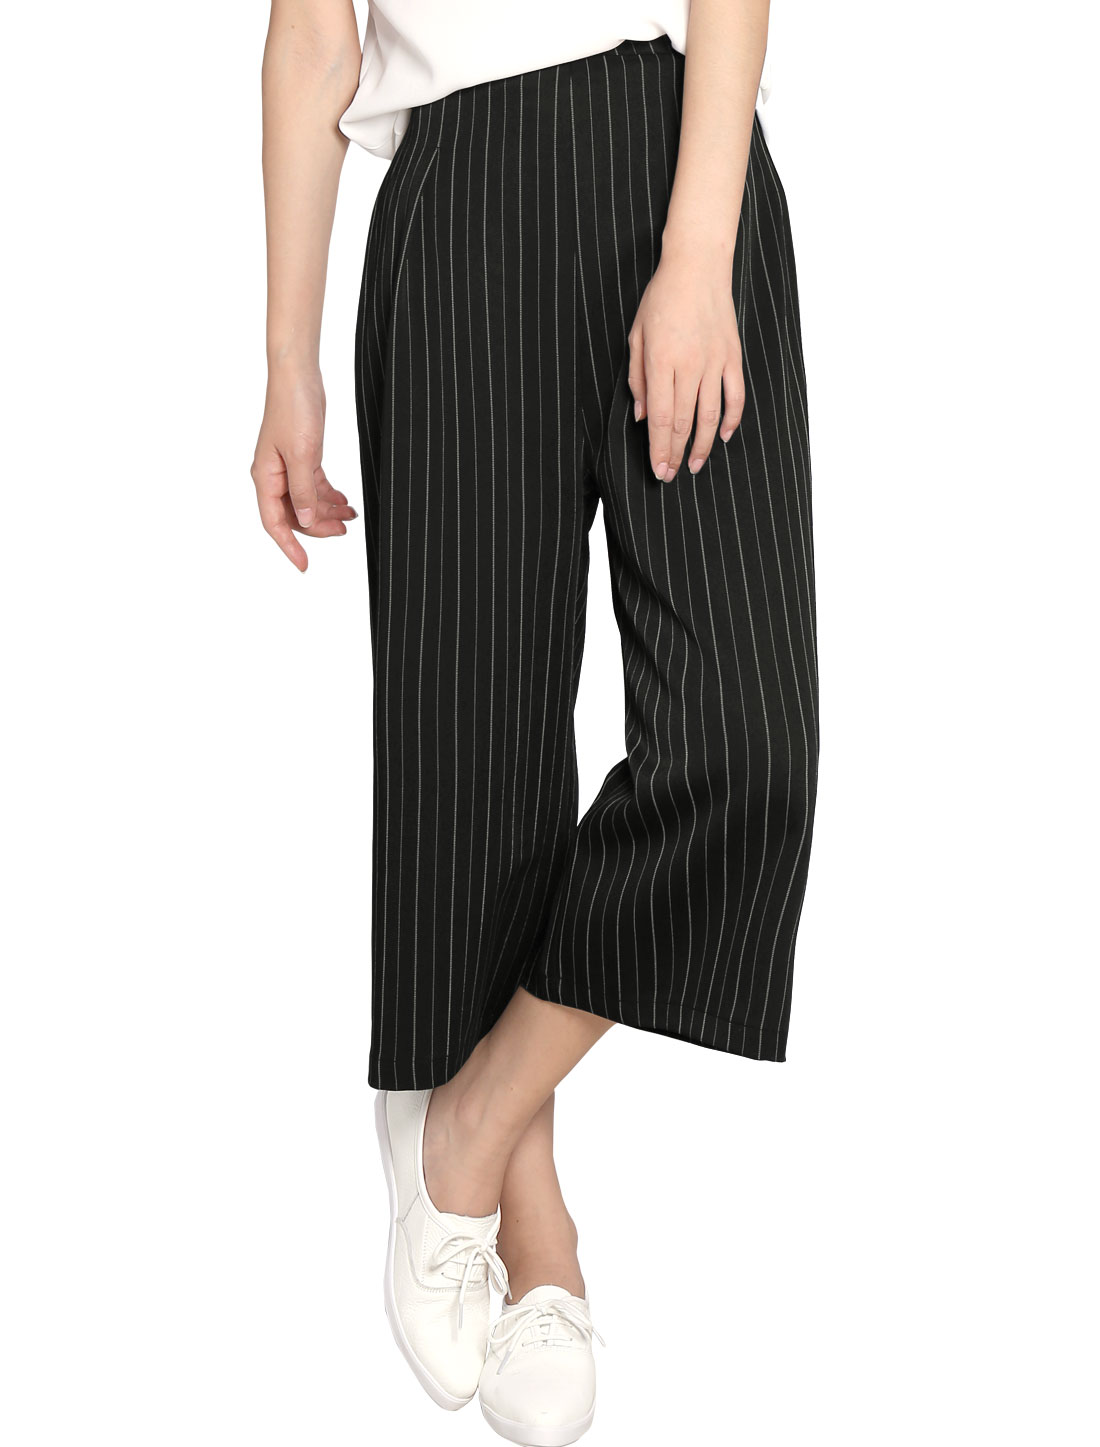 Allegra K Women Capris Vertical Stripes Wide Leg Pants Black XS